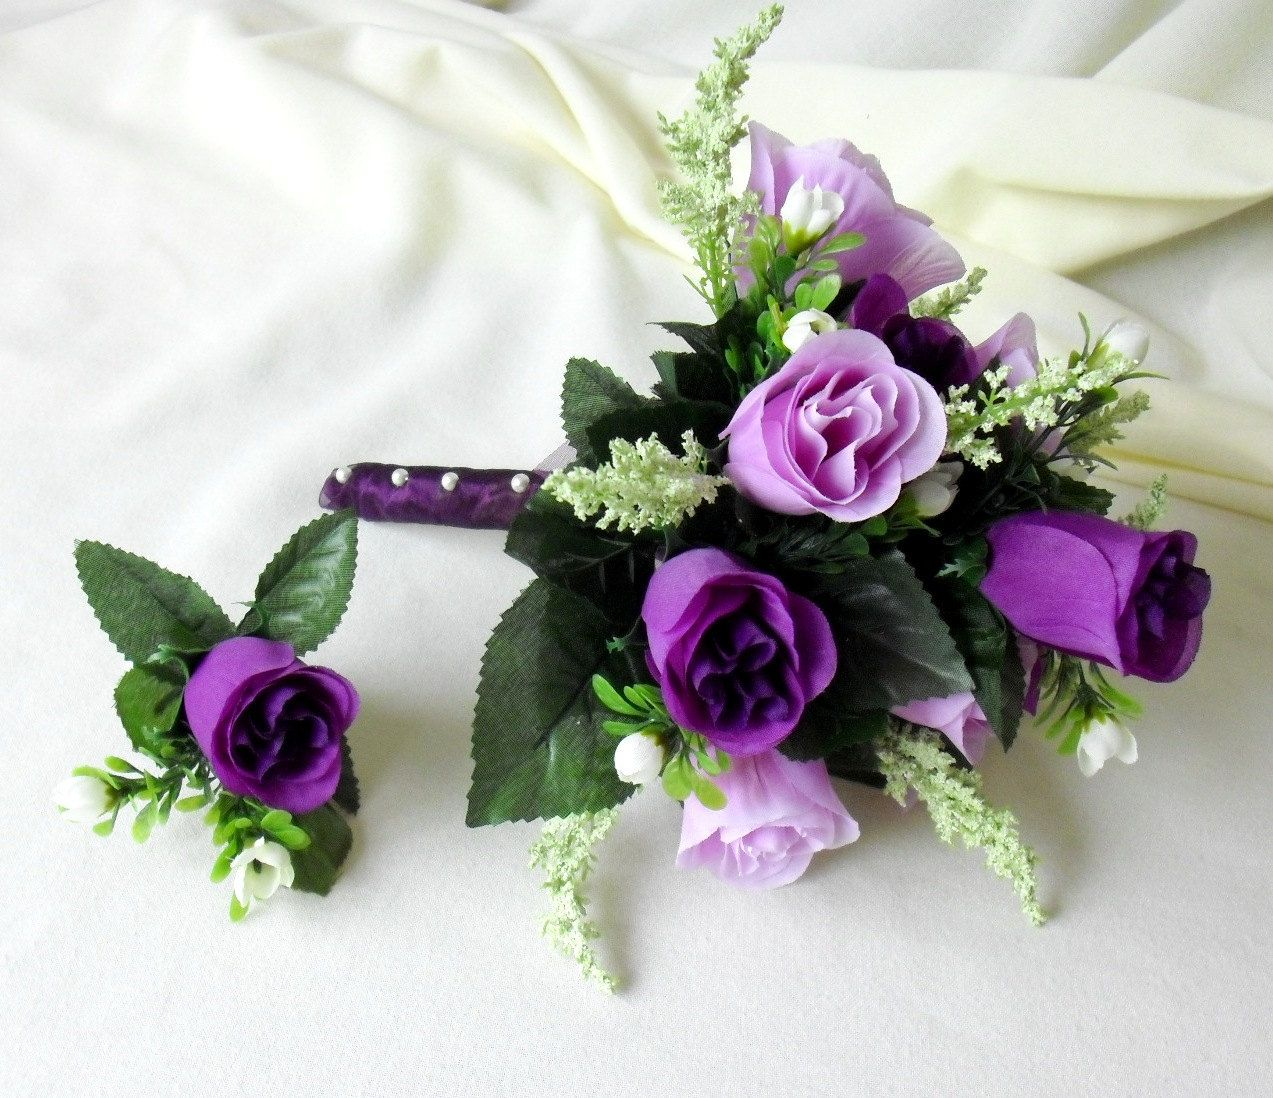 Lavender Rose Gypsophila Bridal Bouquet: Silk Bridal Bouquet Purple Lavender Roses Wedding Flowers